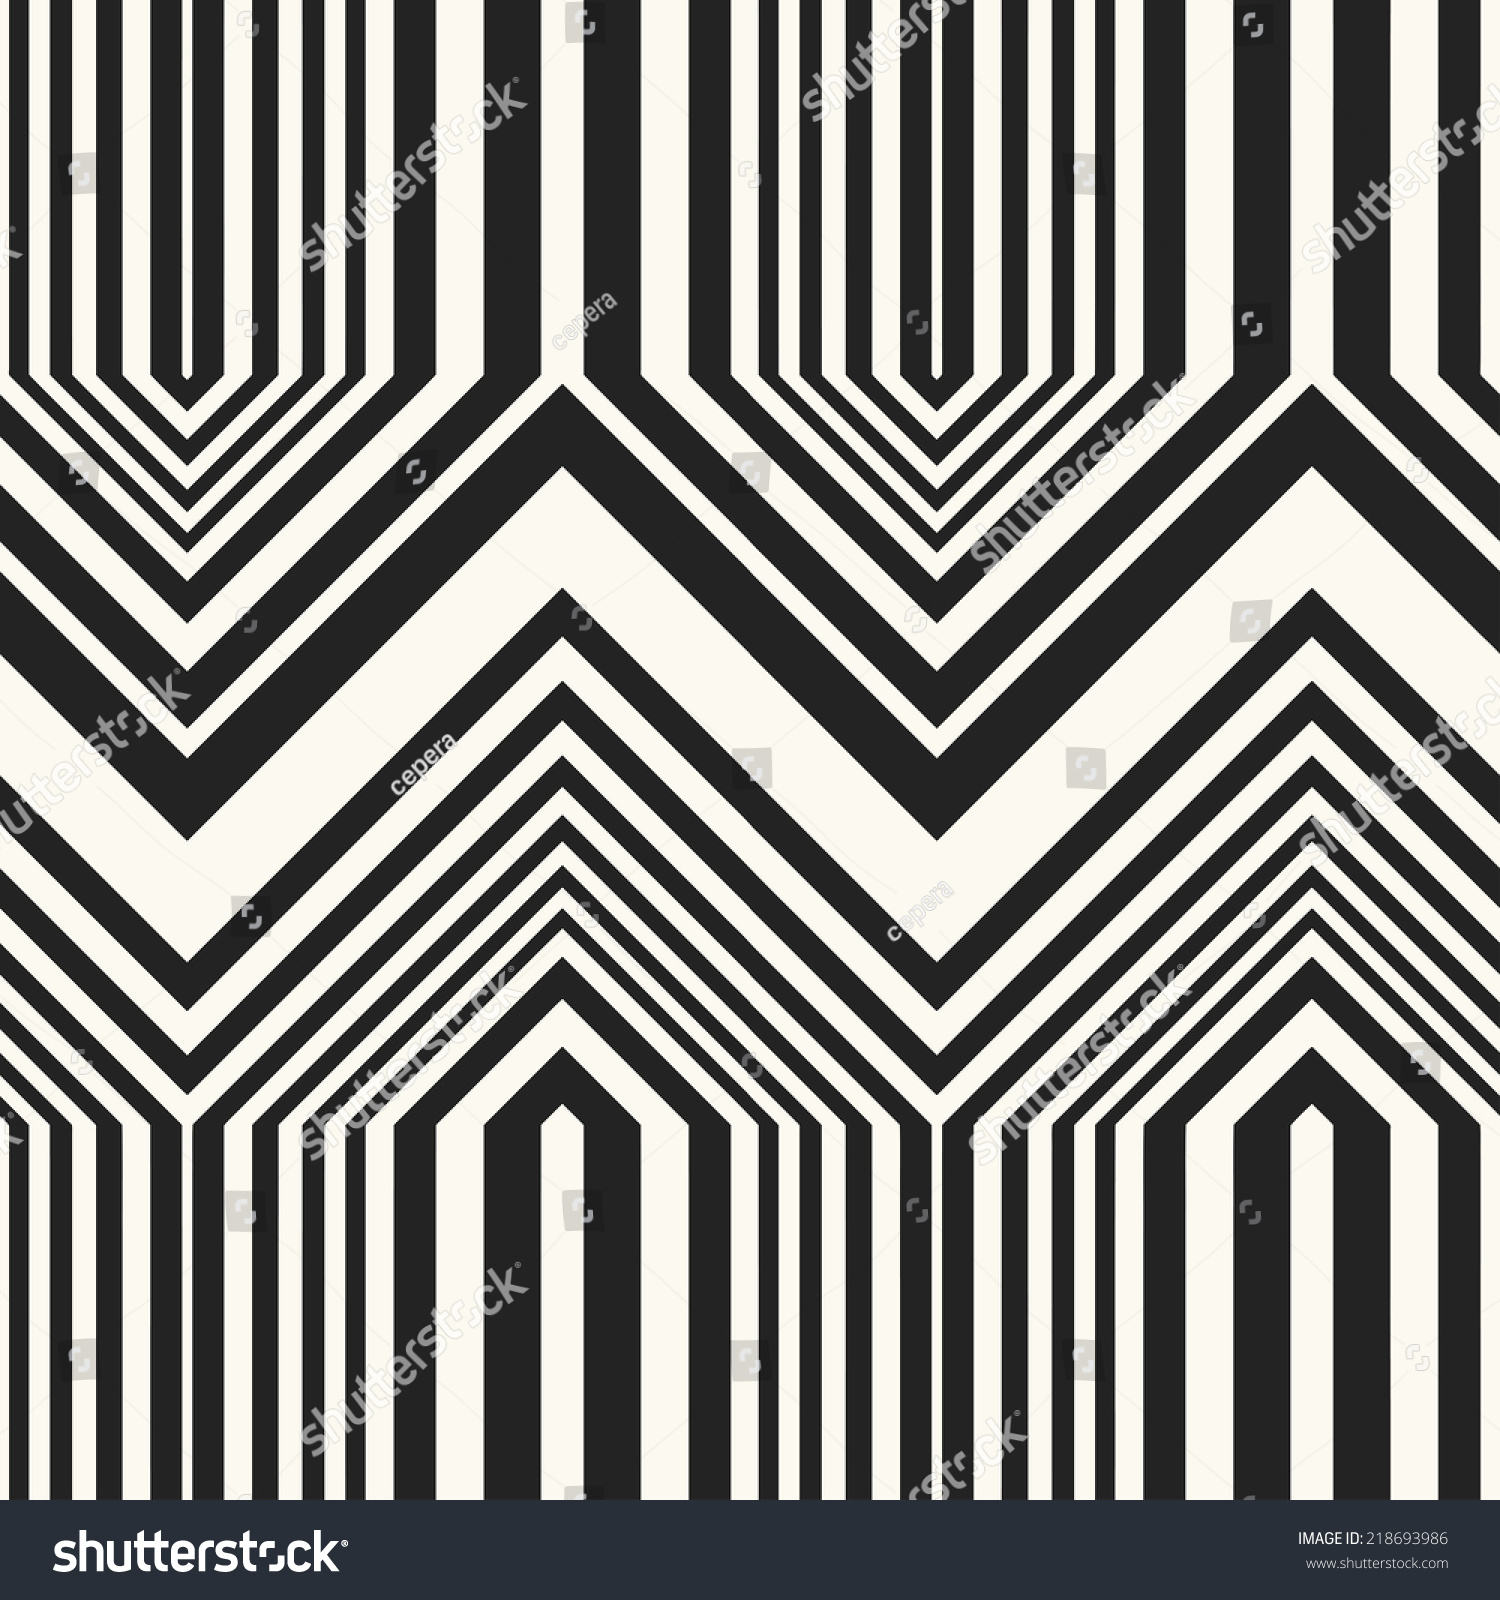 abstract striped textured chevron motif seamless stock illustration 218693986 shutterstock. Black Bedroom Furniture Sets. Home Design Ideas